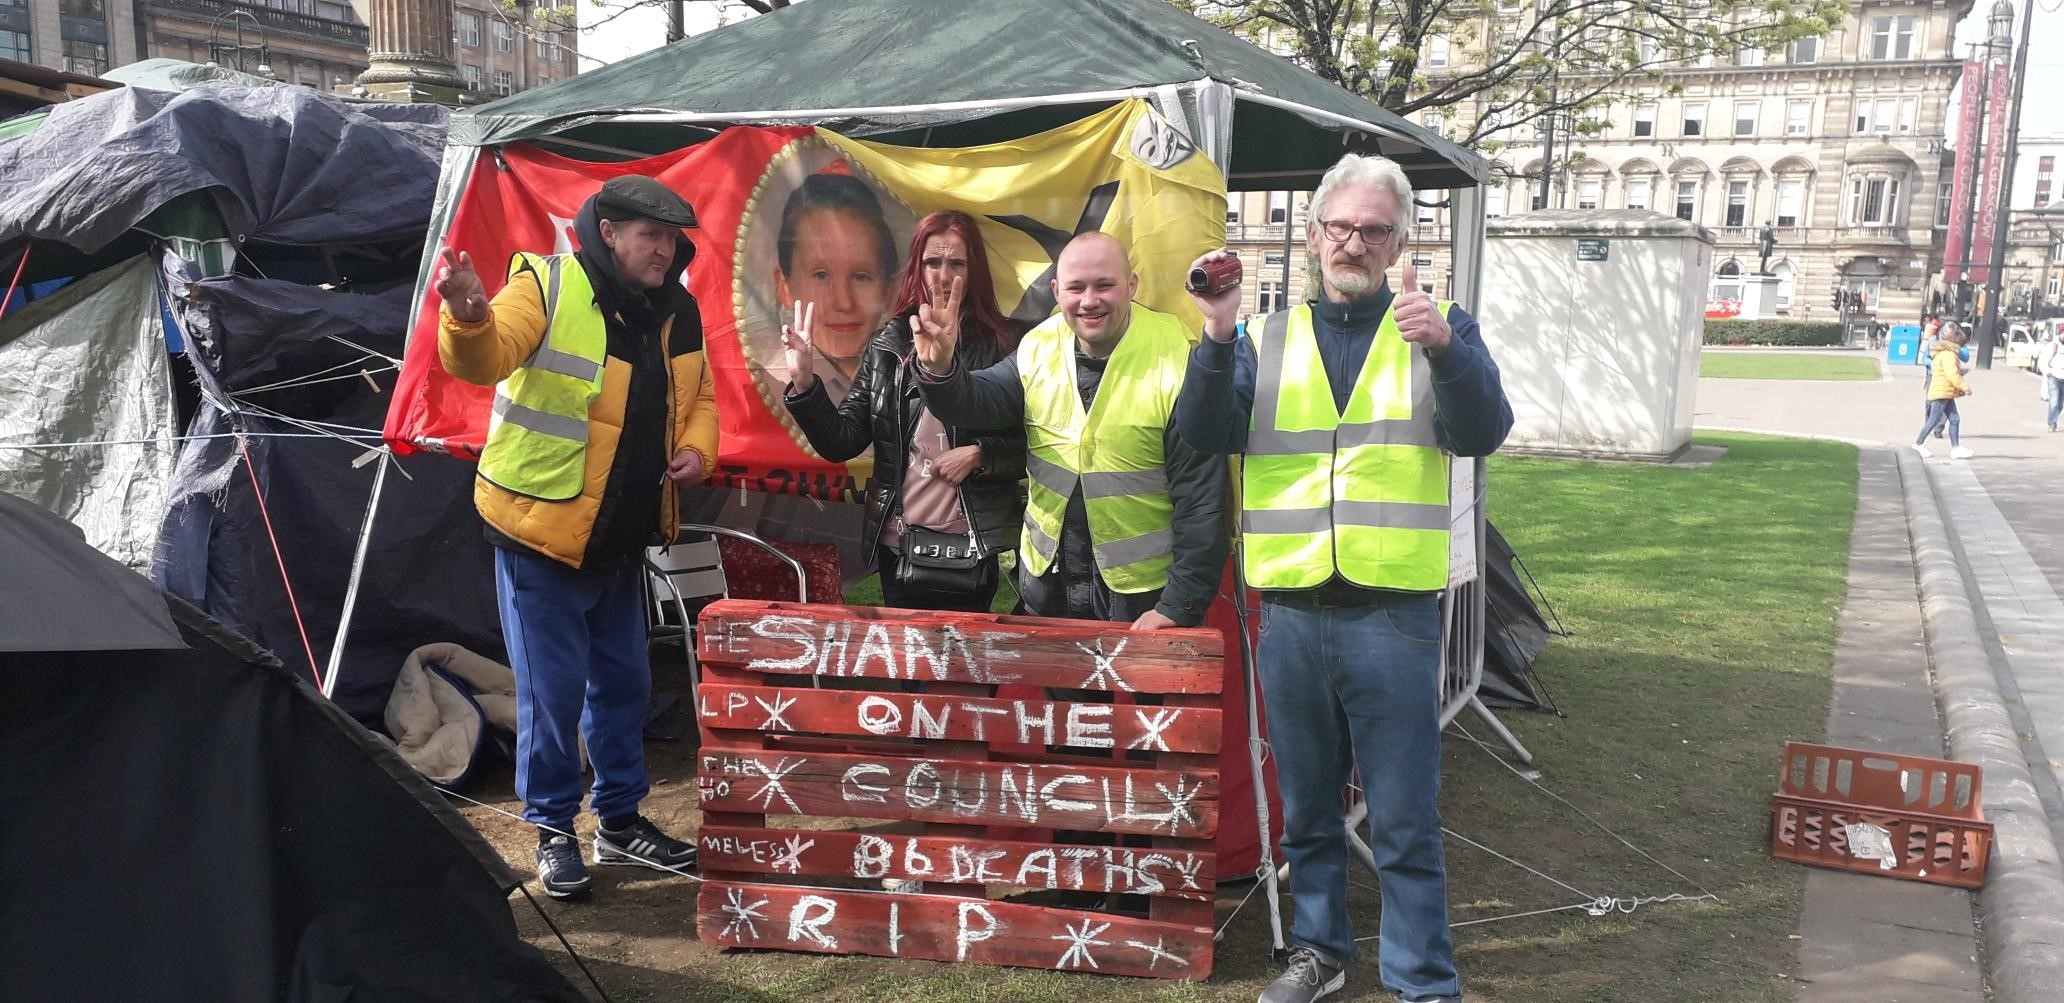 Glasgow's George Square protest continues despite homeless people being given accommodation